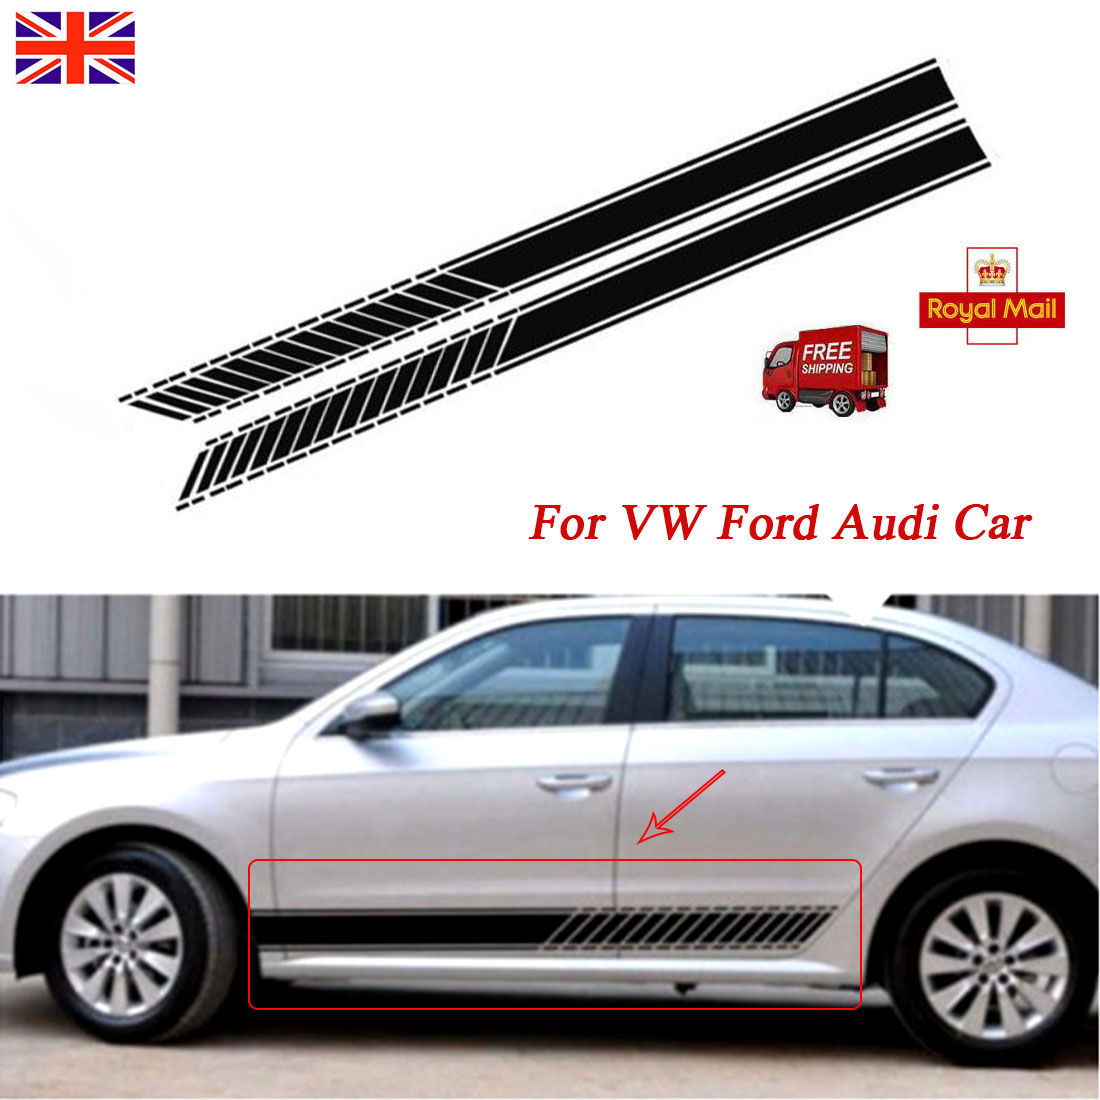 Details about for vw ford audi car bonnet racing viper stripes decals sticker